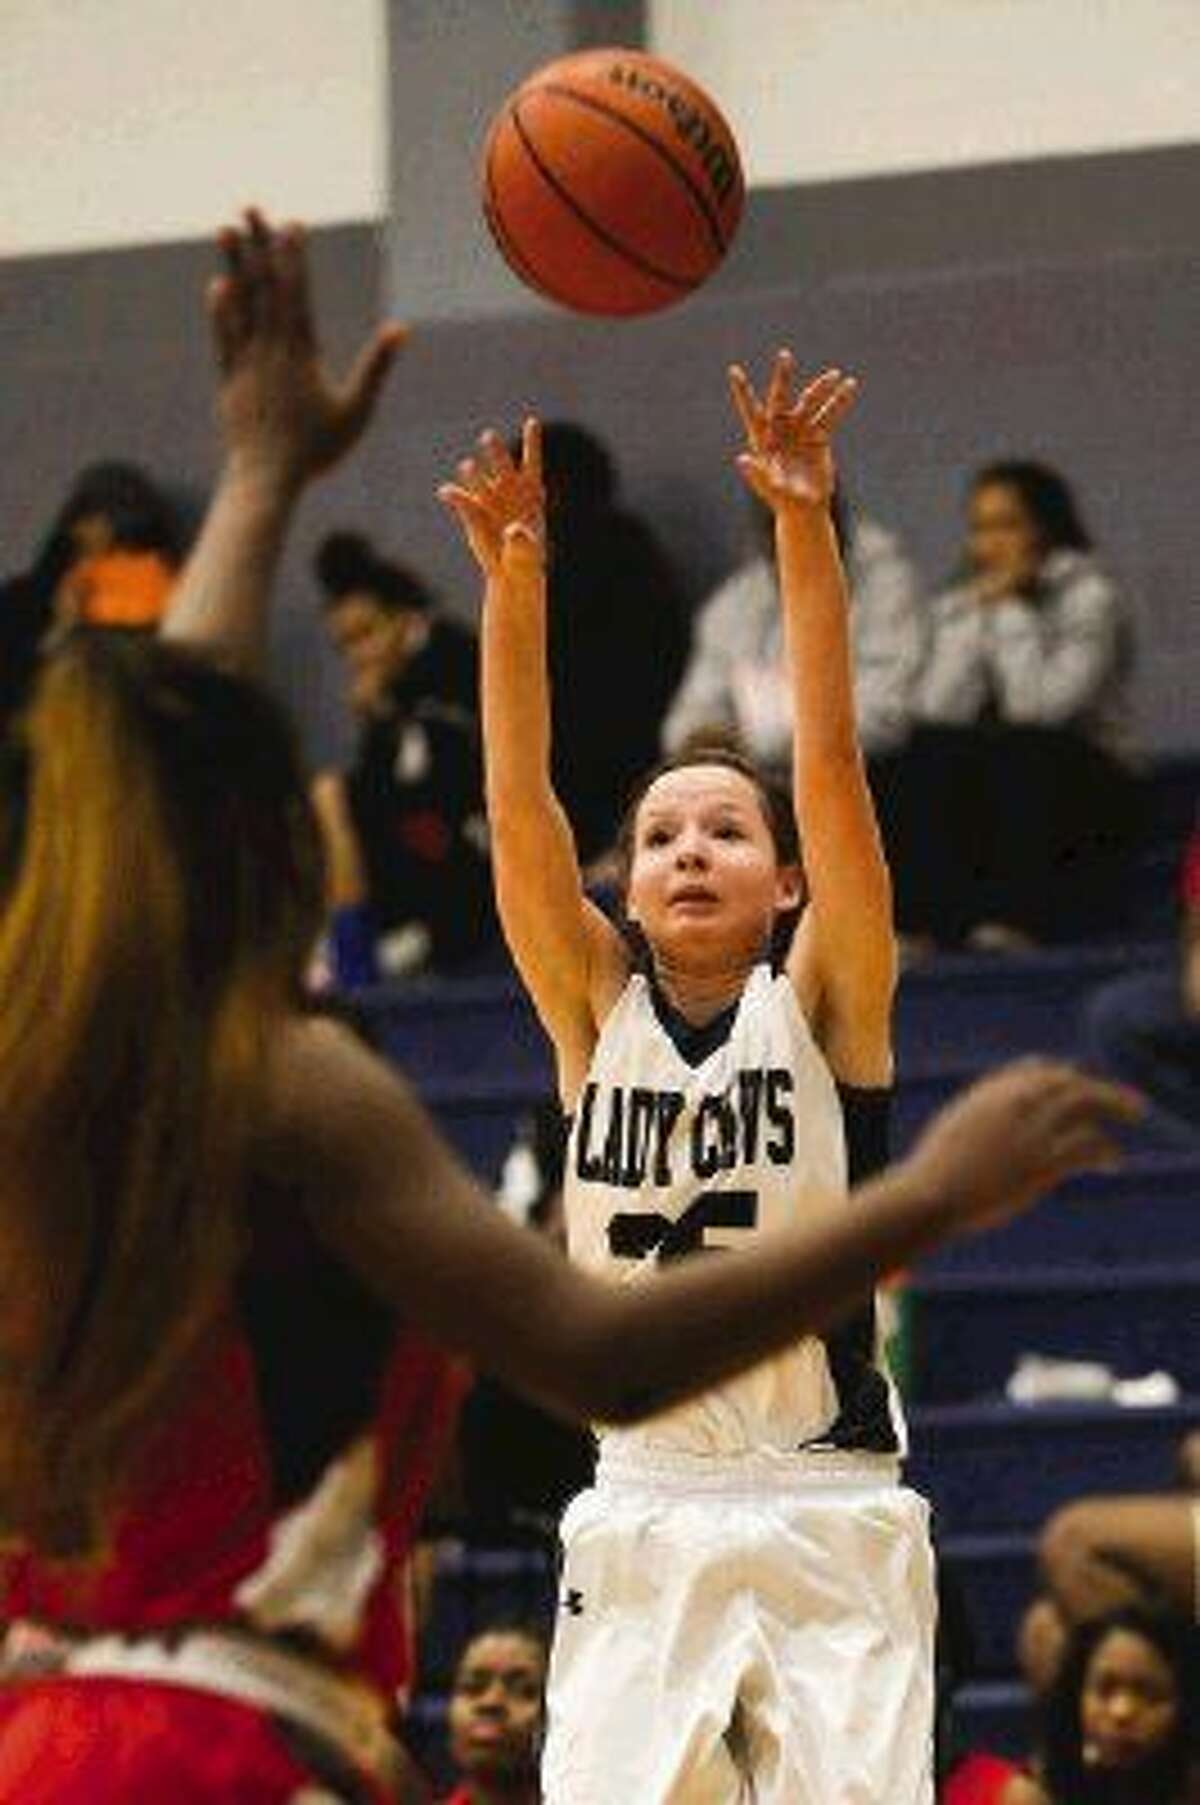 College Park's Haley Fitzpatrick (25) shoots for the basket during the high school girls basketball game against Westfield on Tuesday, Dec. 9, 2014, at College Park High School.